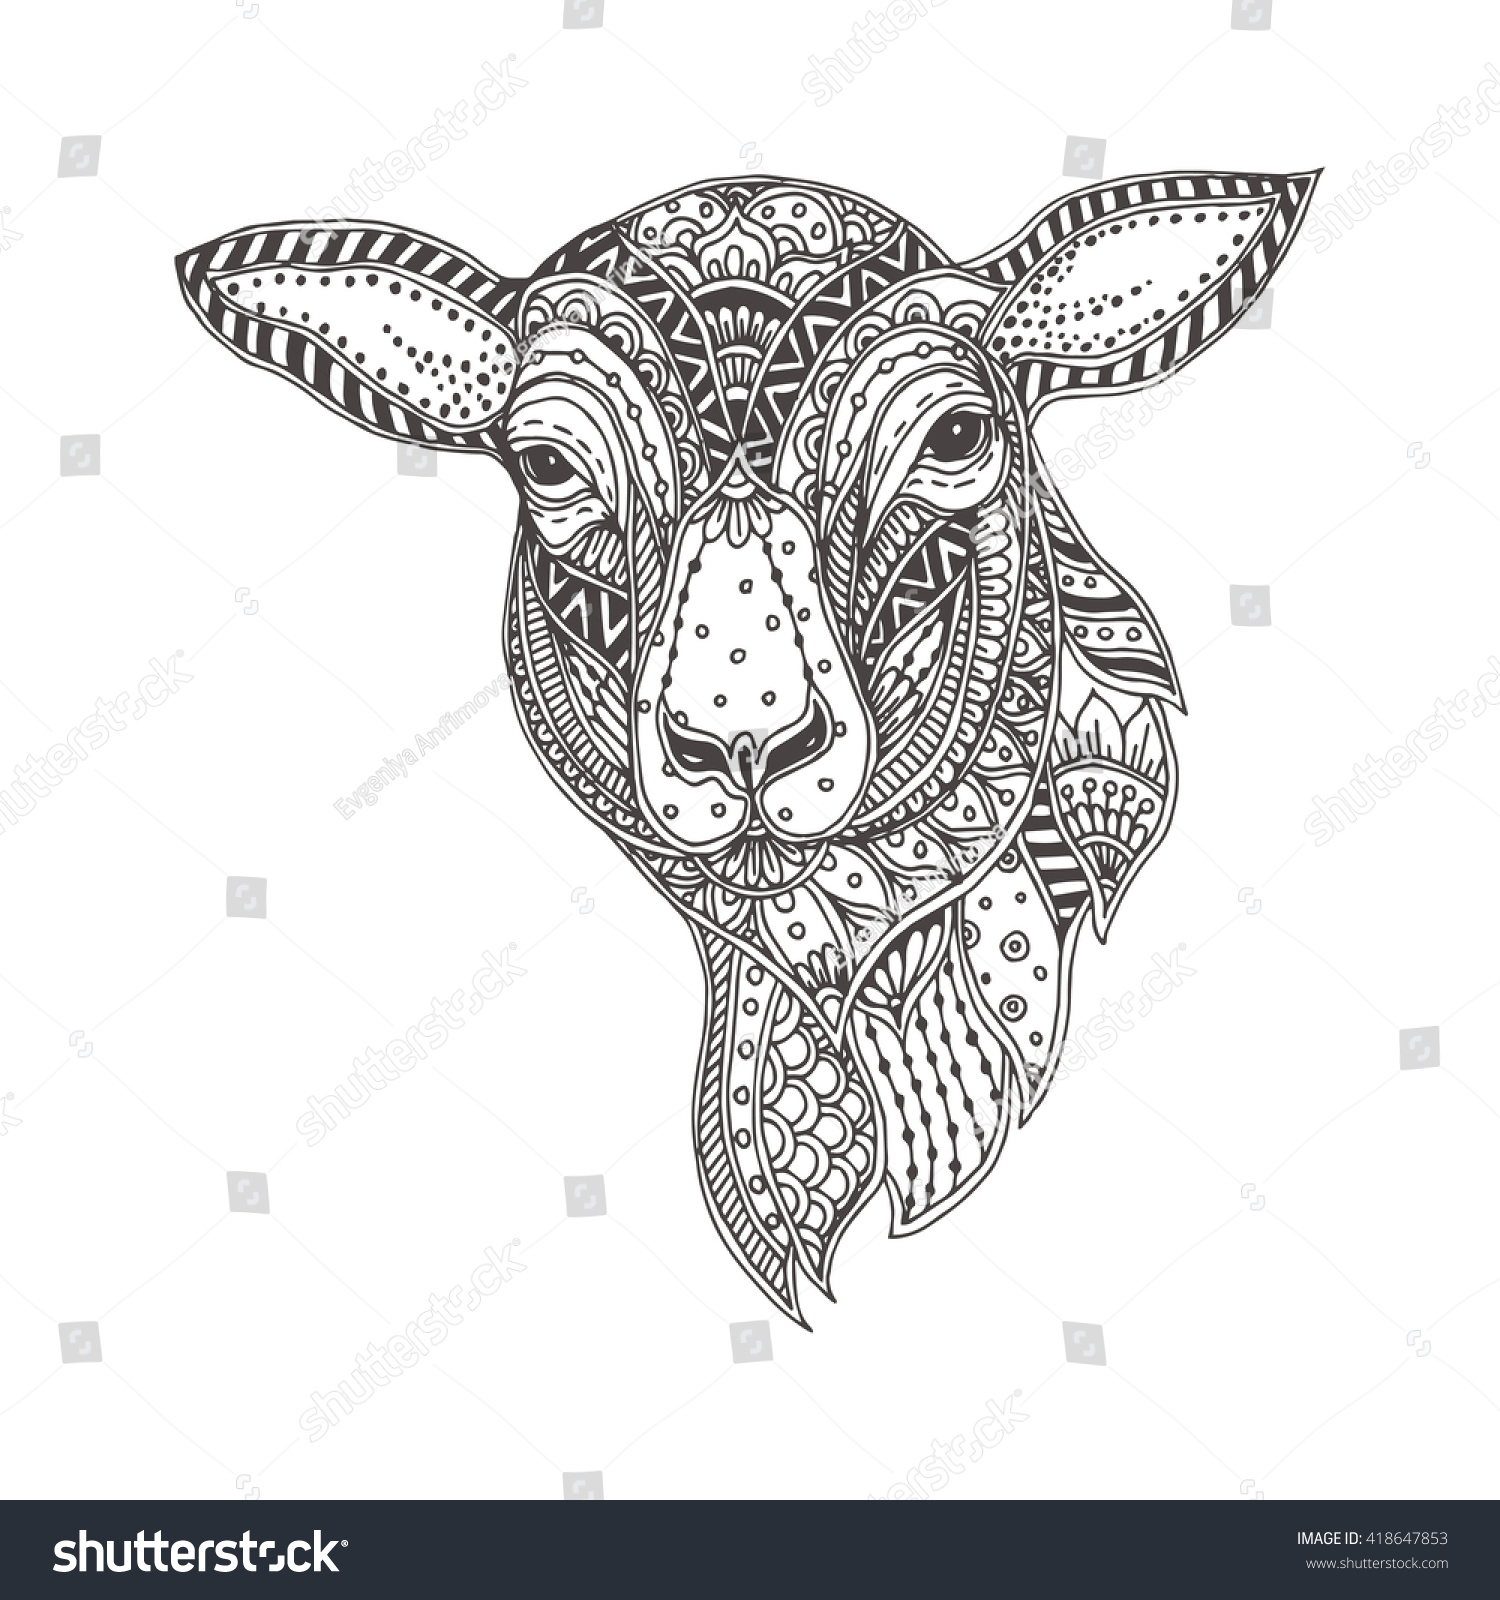 Handdrawn Sheep Ethnic Floral Doodle Pattern Stock Vector (Royalty ...